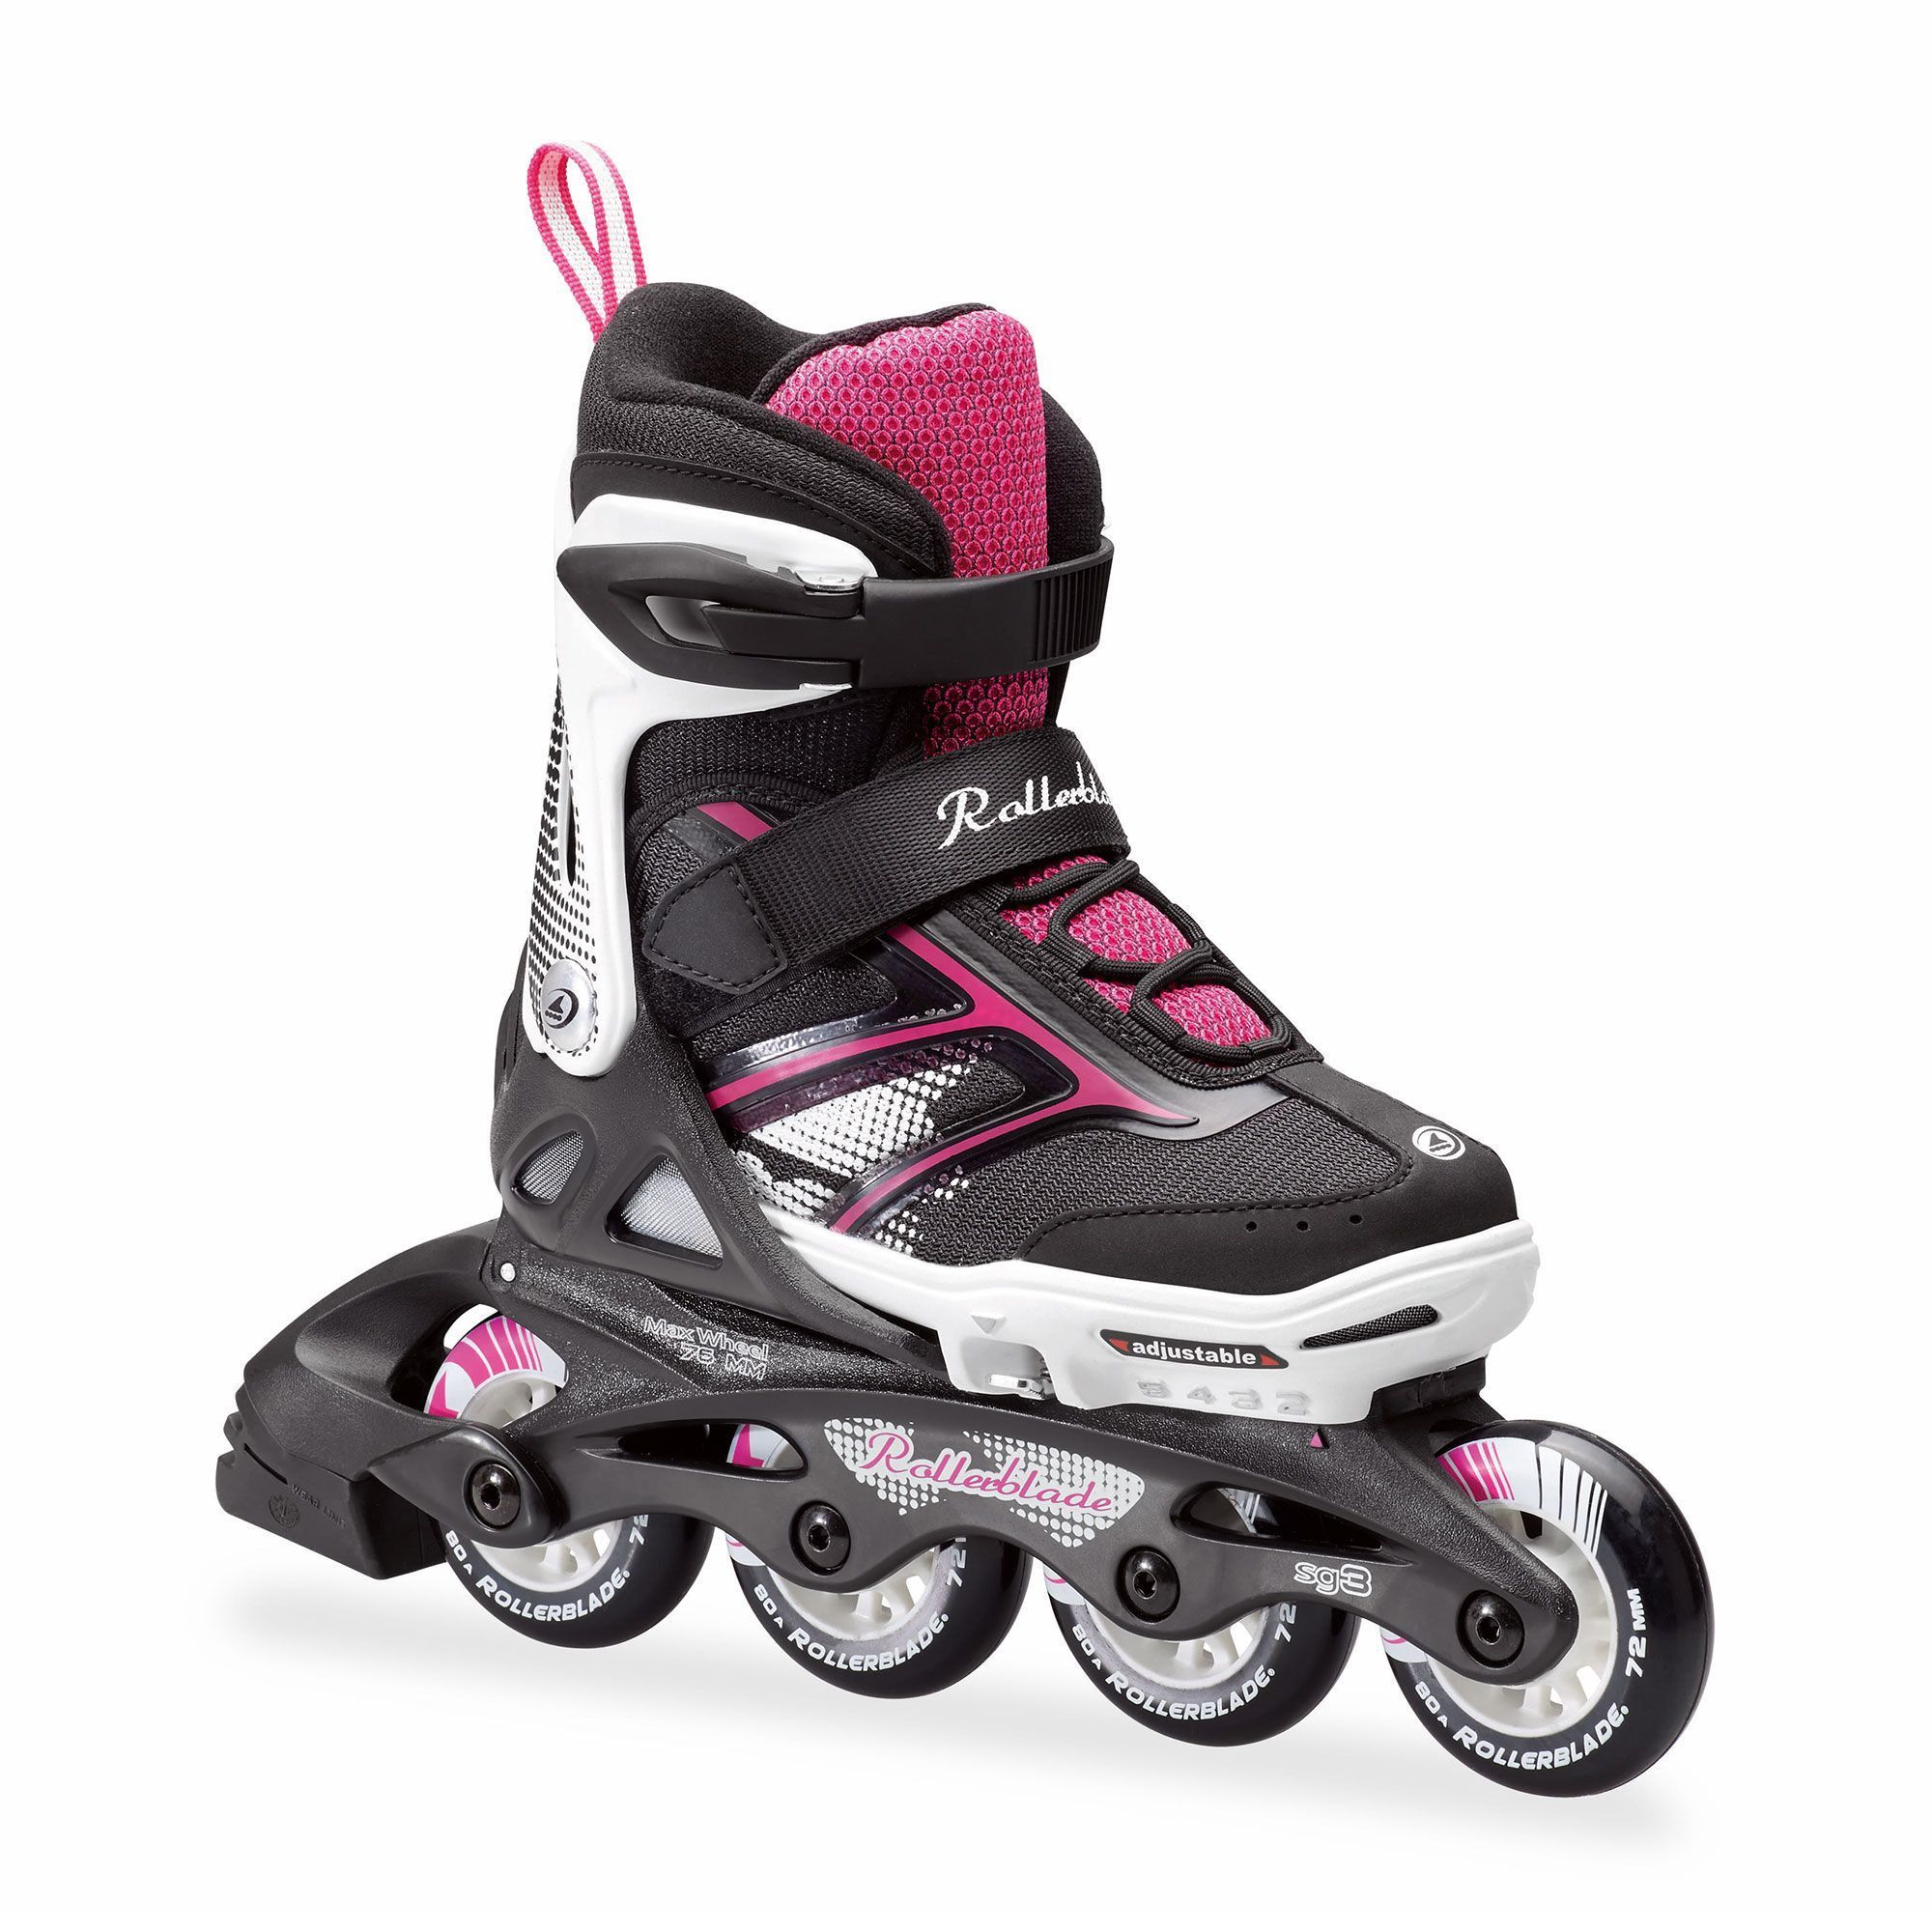 Dukes roller shoes - Inline